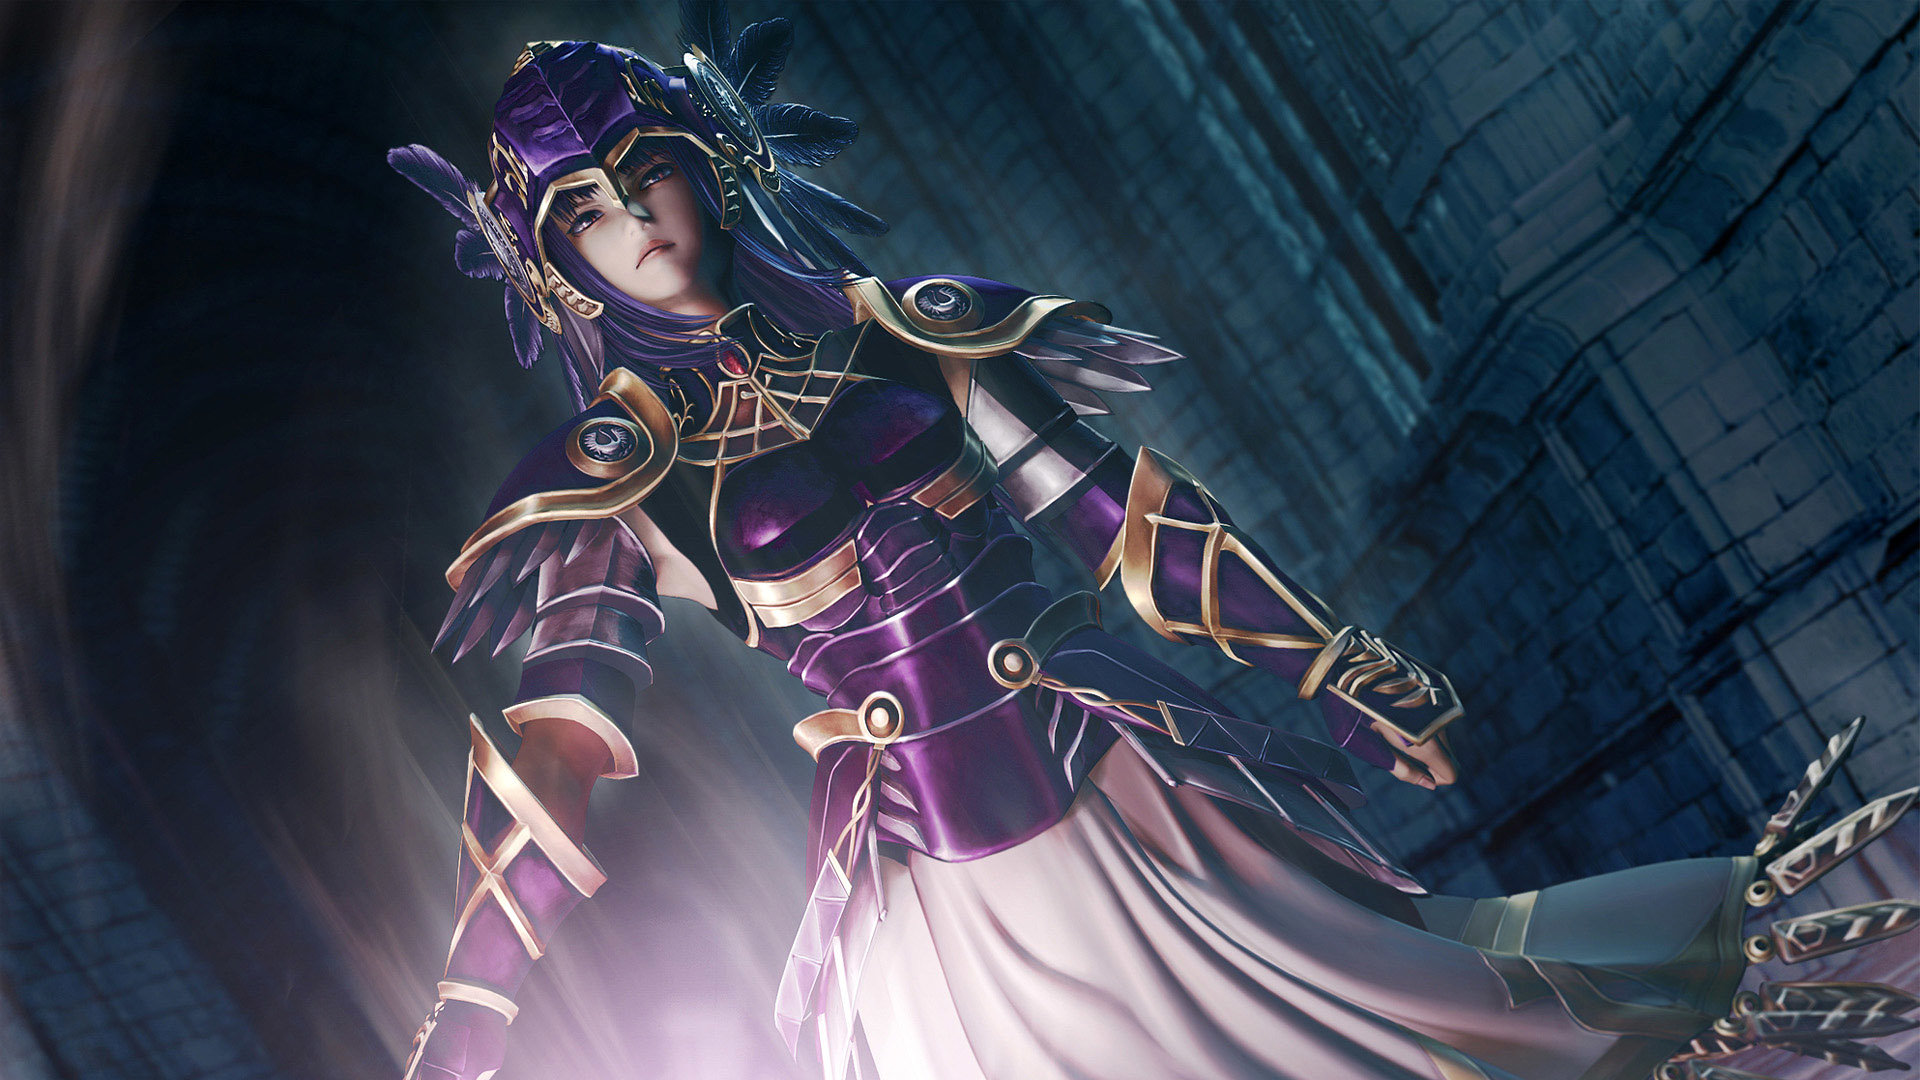 Best Valkyrie Profile wallpaper ID:94930 for High Resolution full hd 1080p desktop